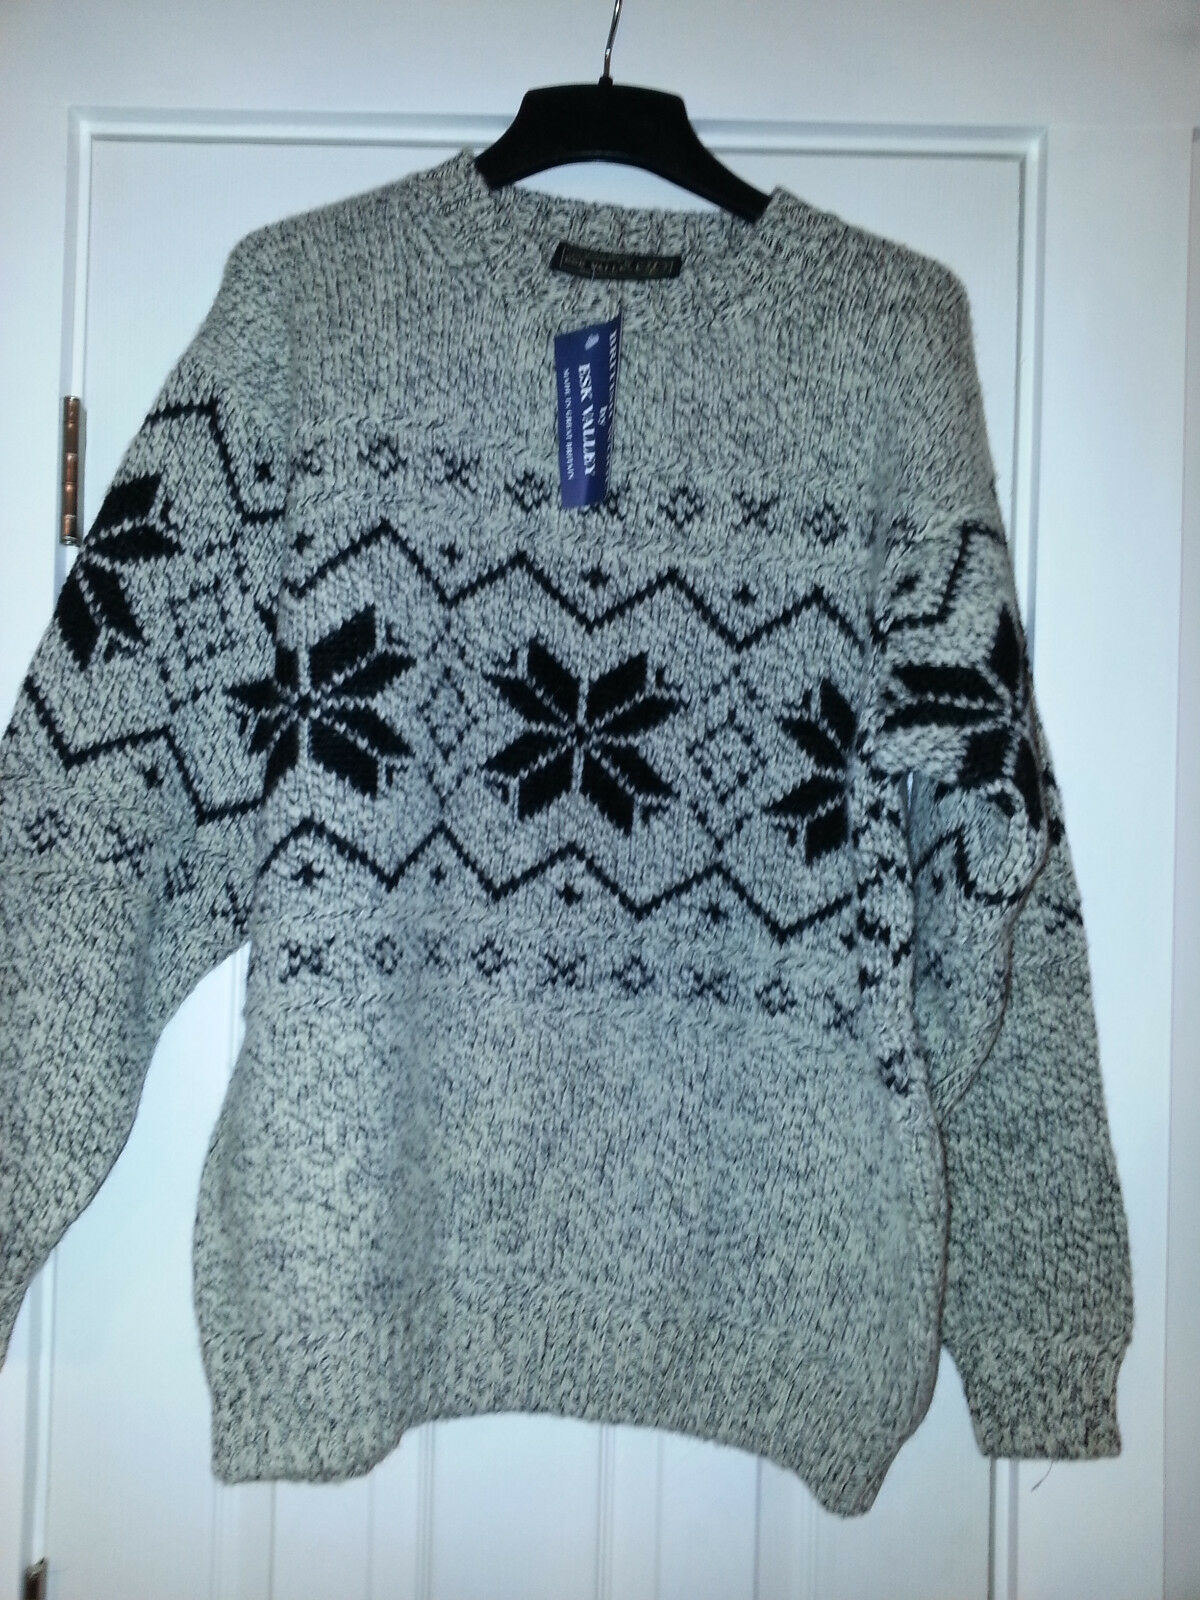 Mens British Wool by ESK VALLEY Made in England Sweater size Large NEW with tags